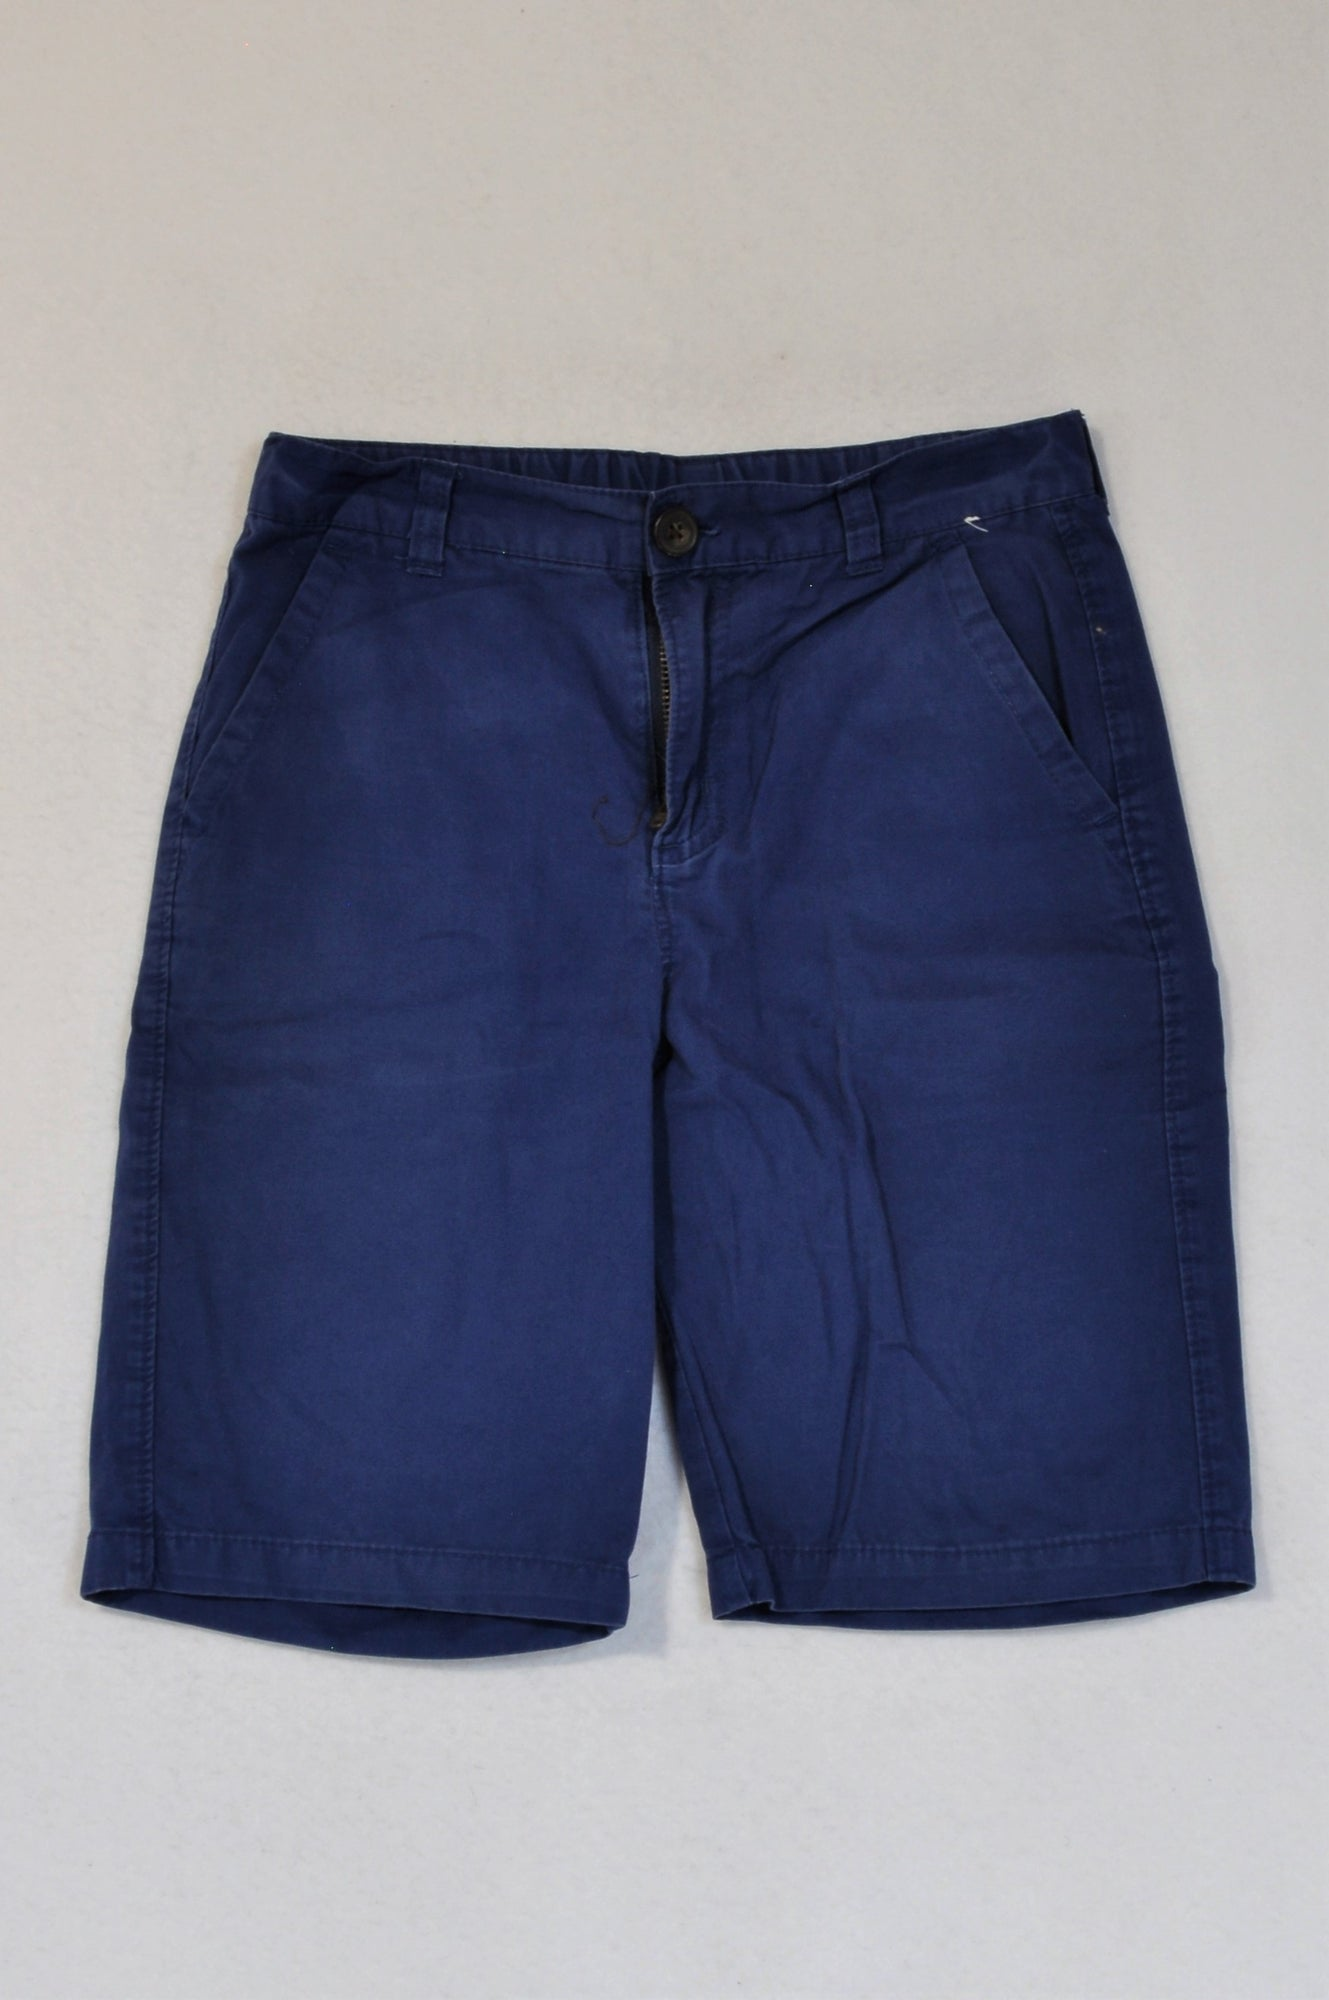 Gymboree Blue Intentional Fade Shorts Boys 9-10 years